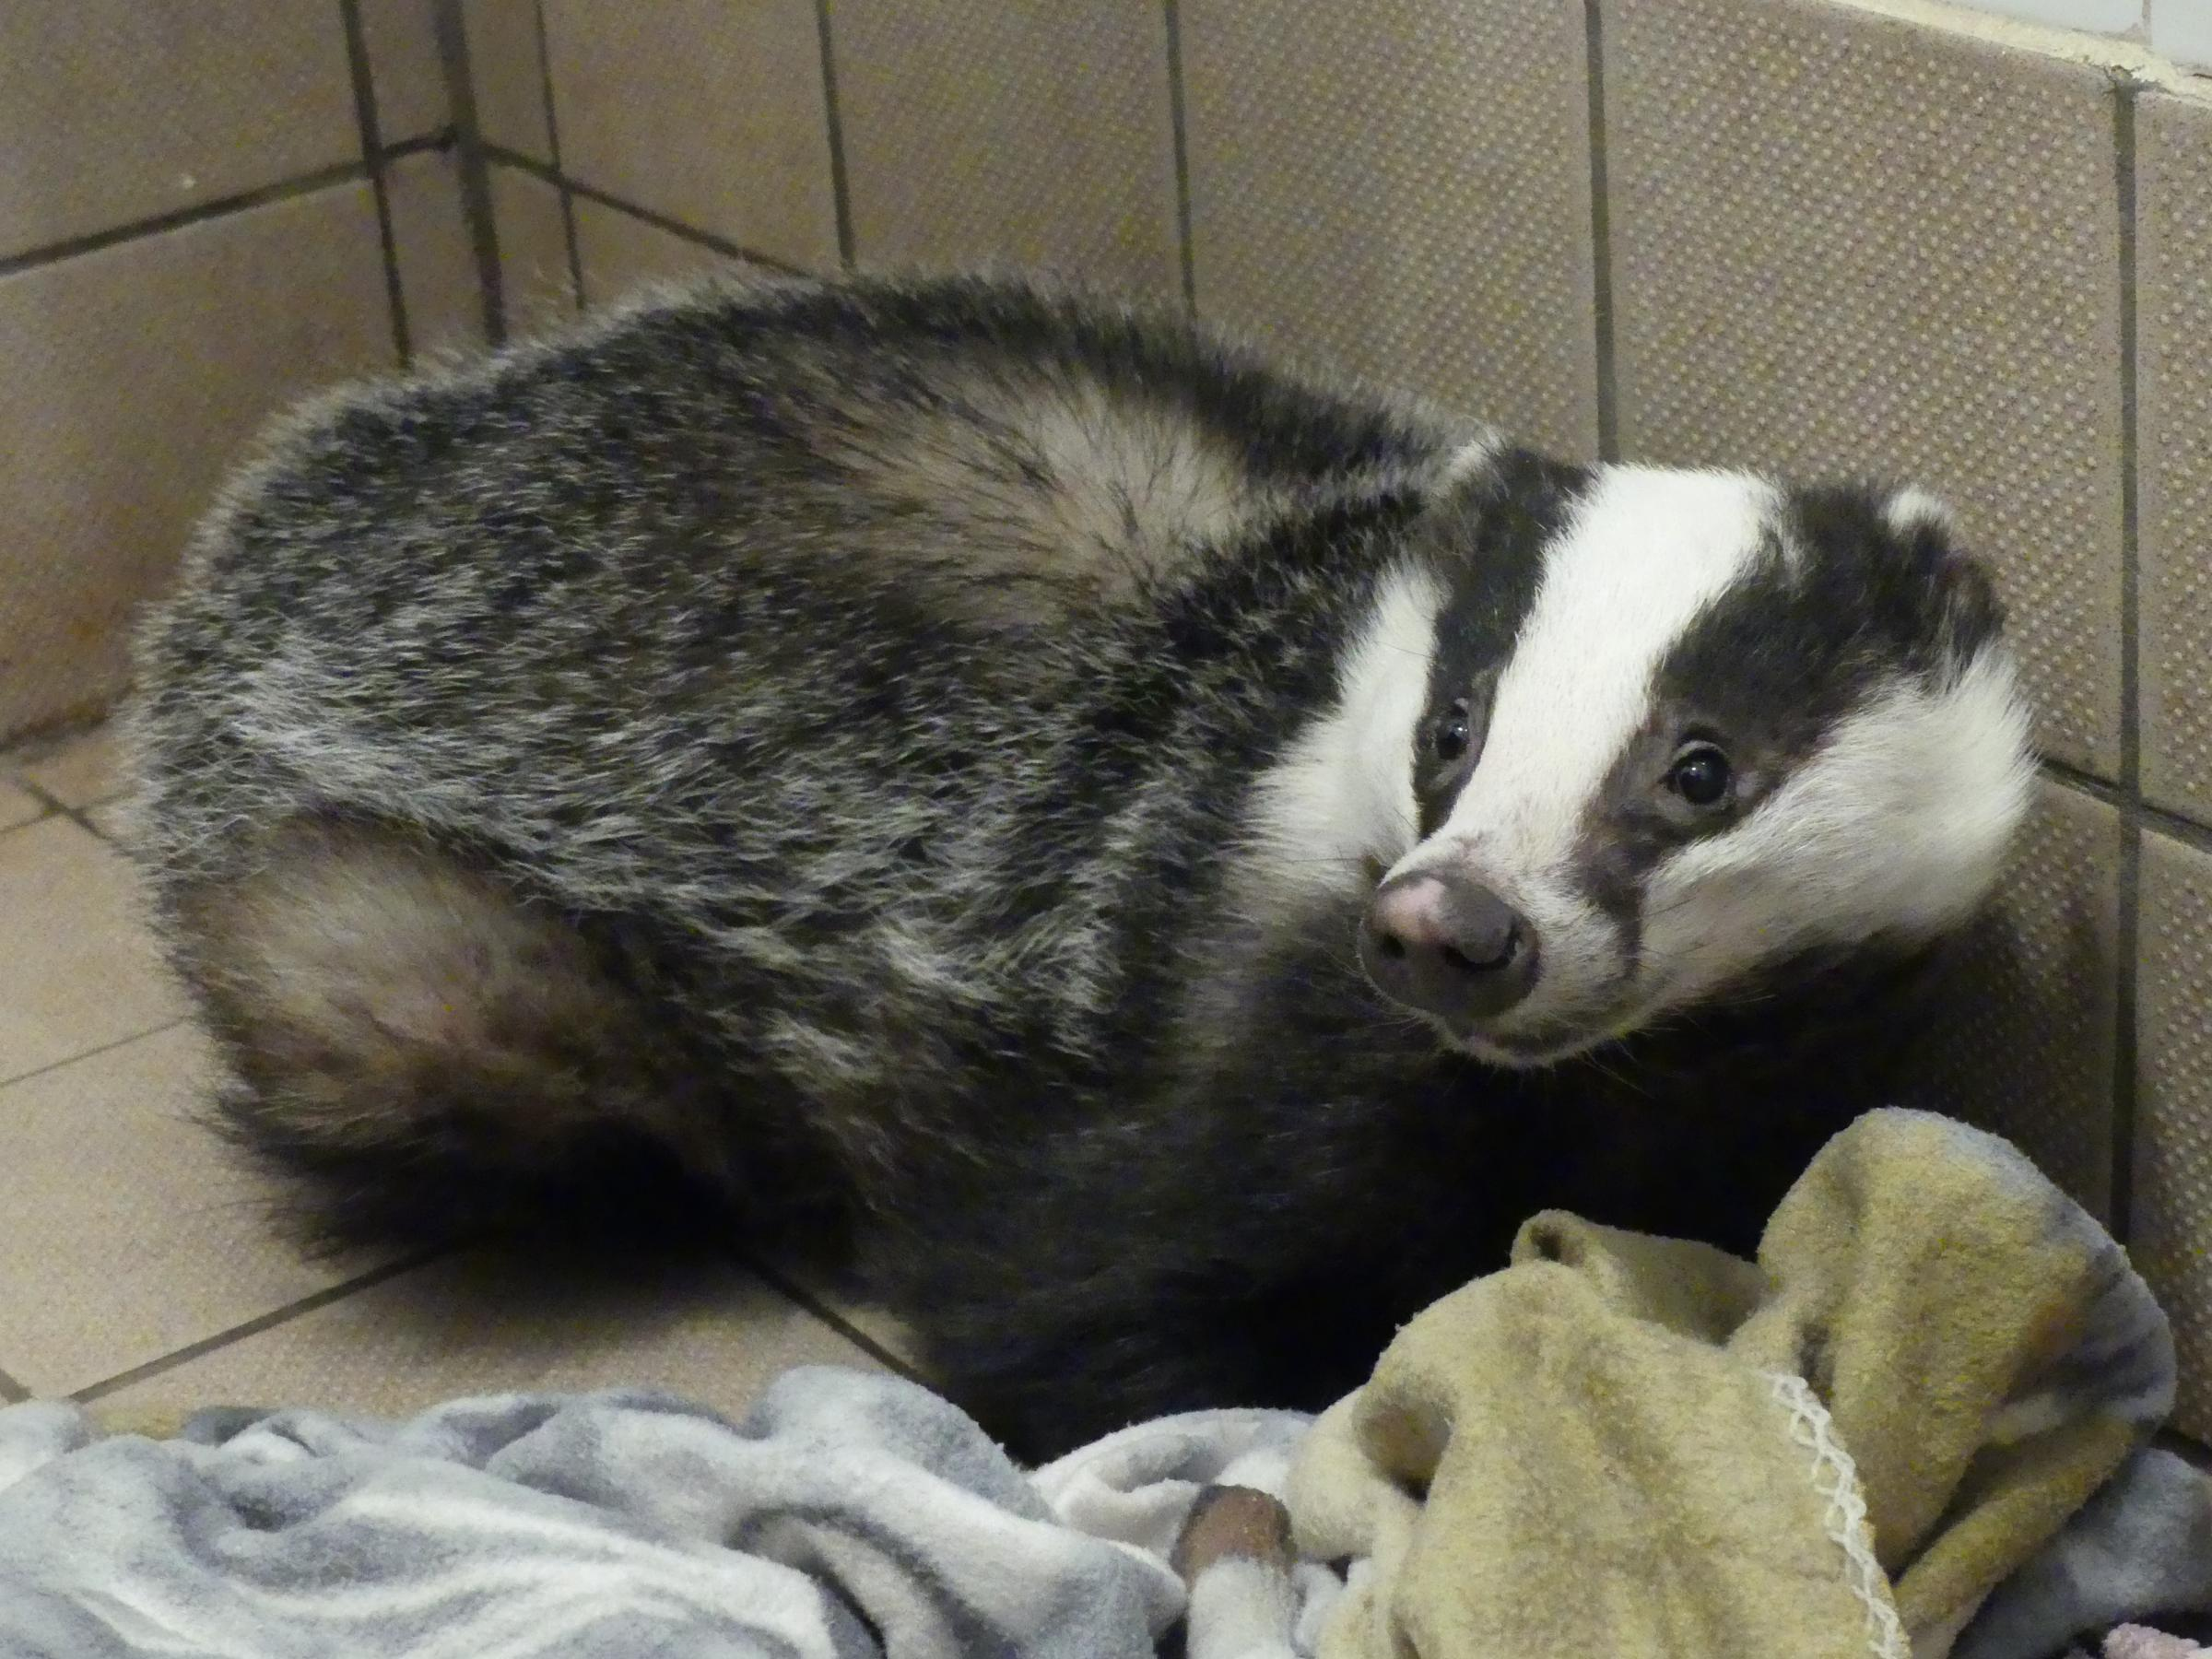 RESCUED: The badger receiving treatment at Secret World Wildlife Rescue